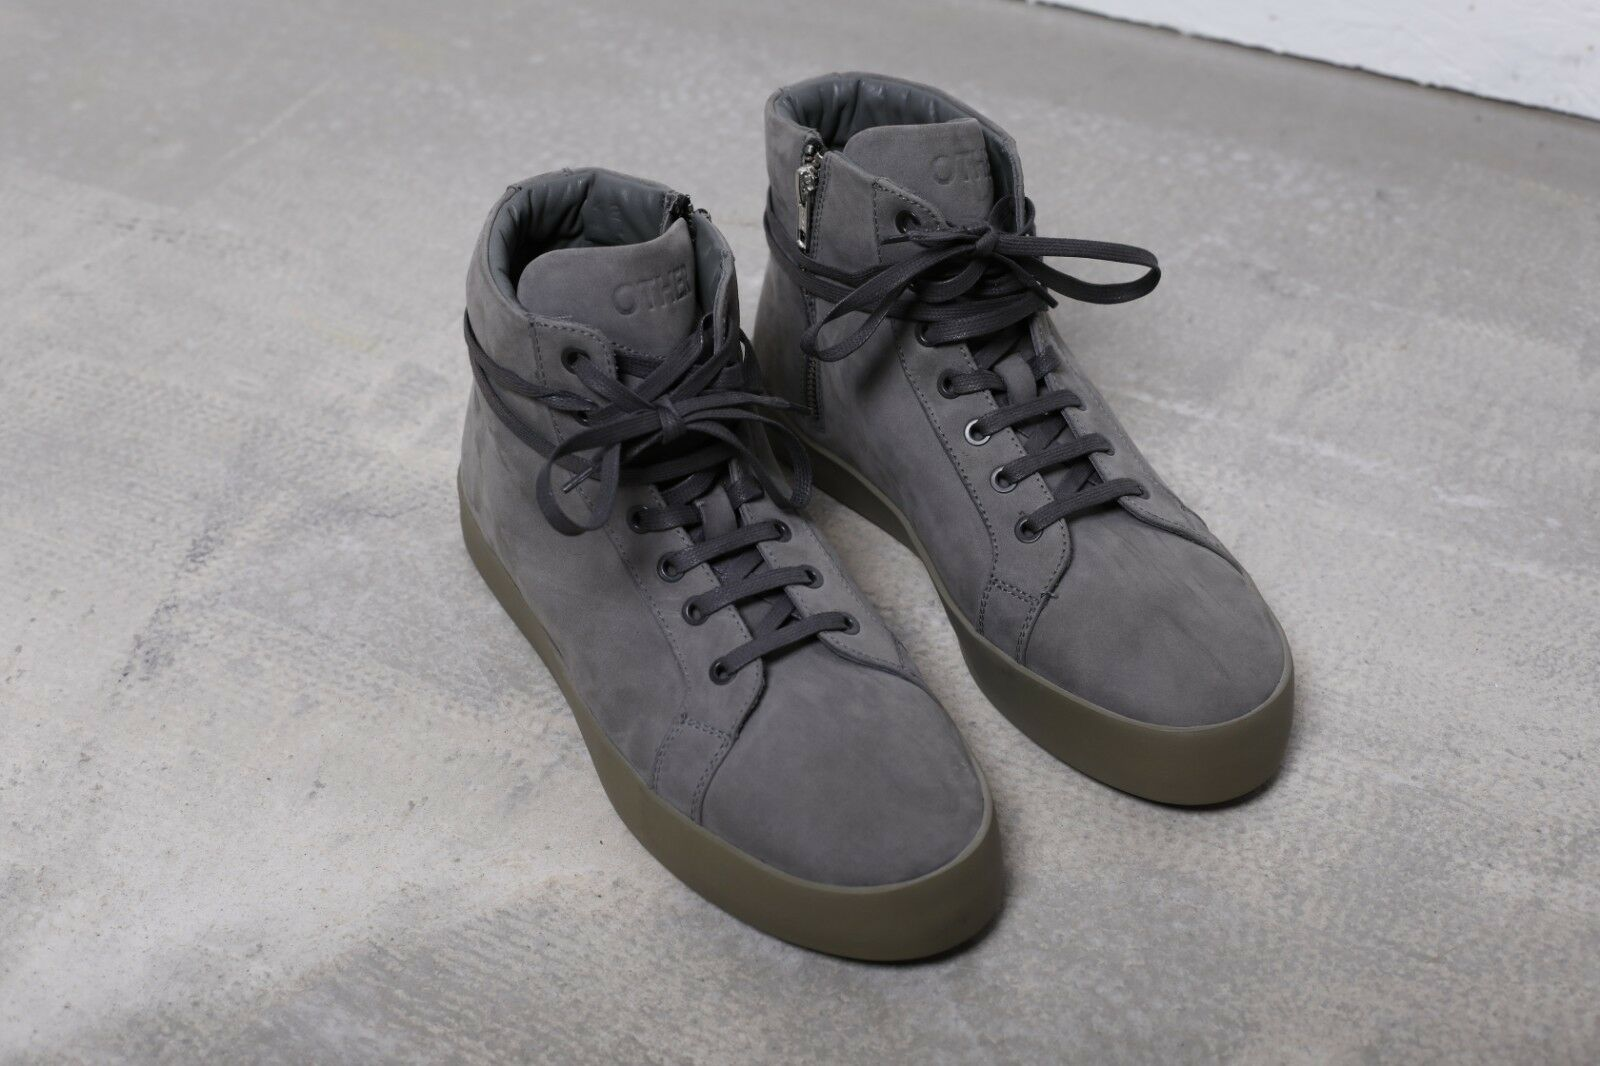 OTHER UK Grey Hi-Top Suede Sneaker Boots